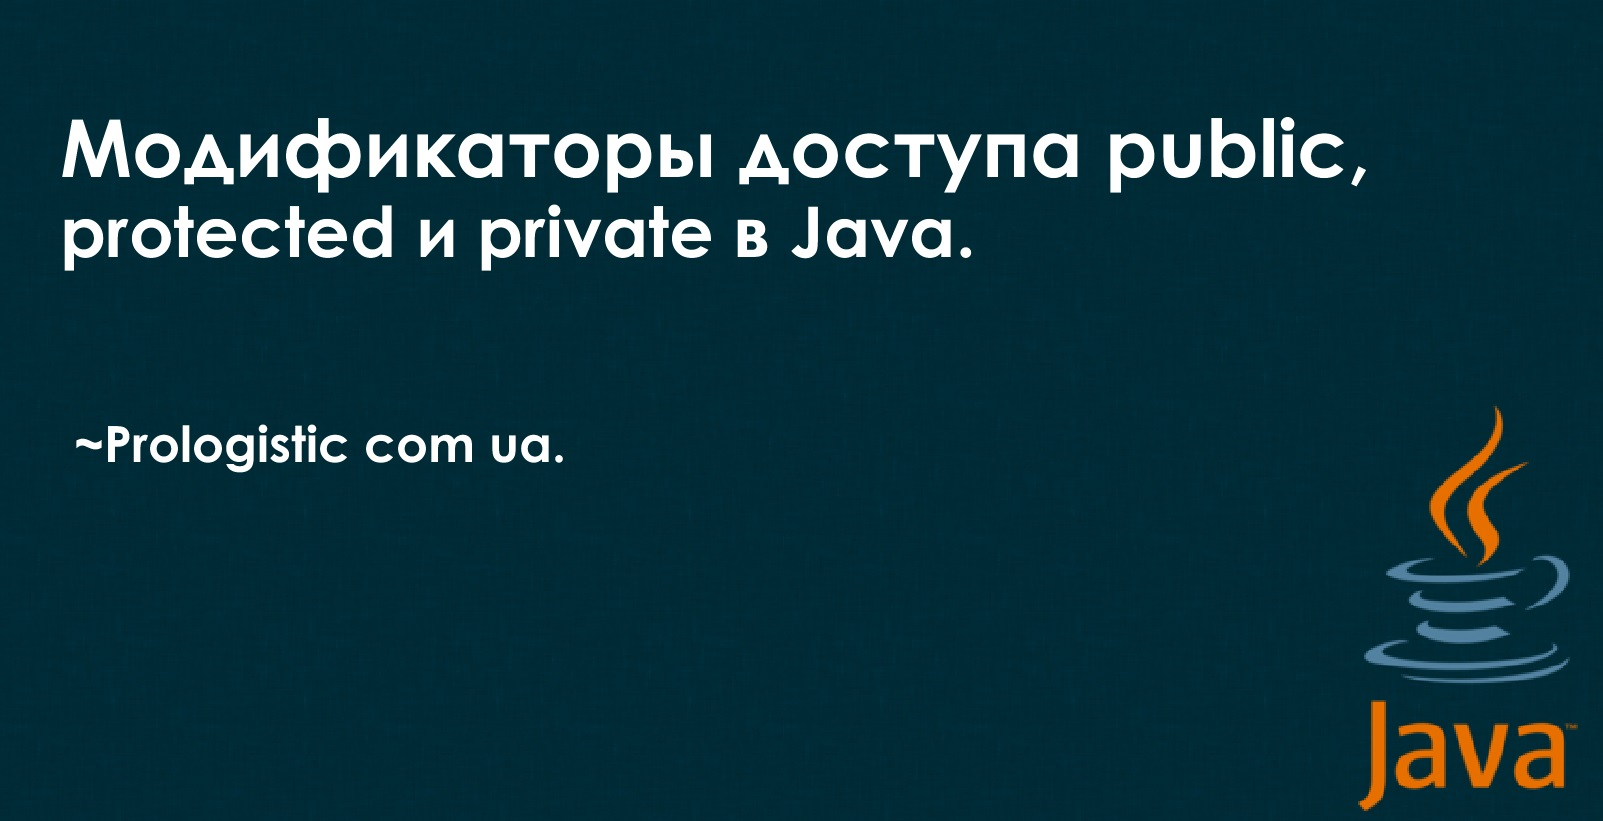 Модификаторы доступа public, protected и private в Java. ~Prologistic.com.ua